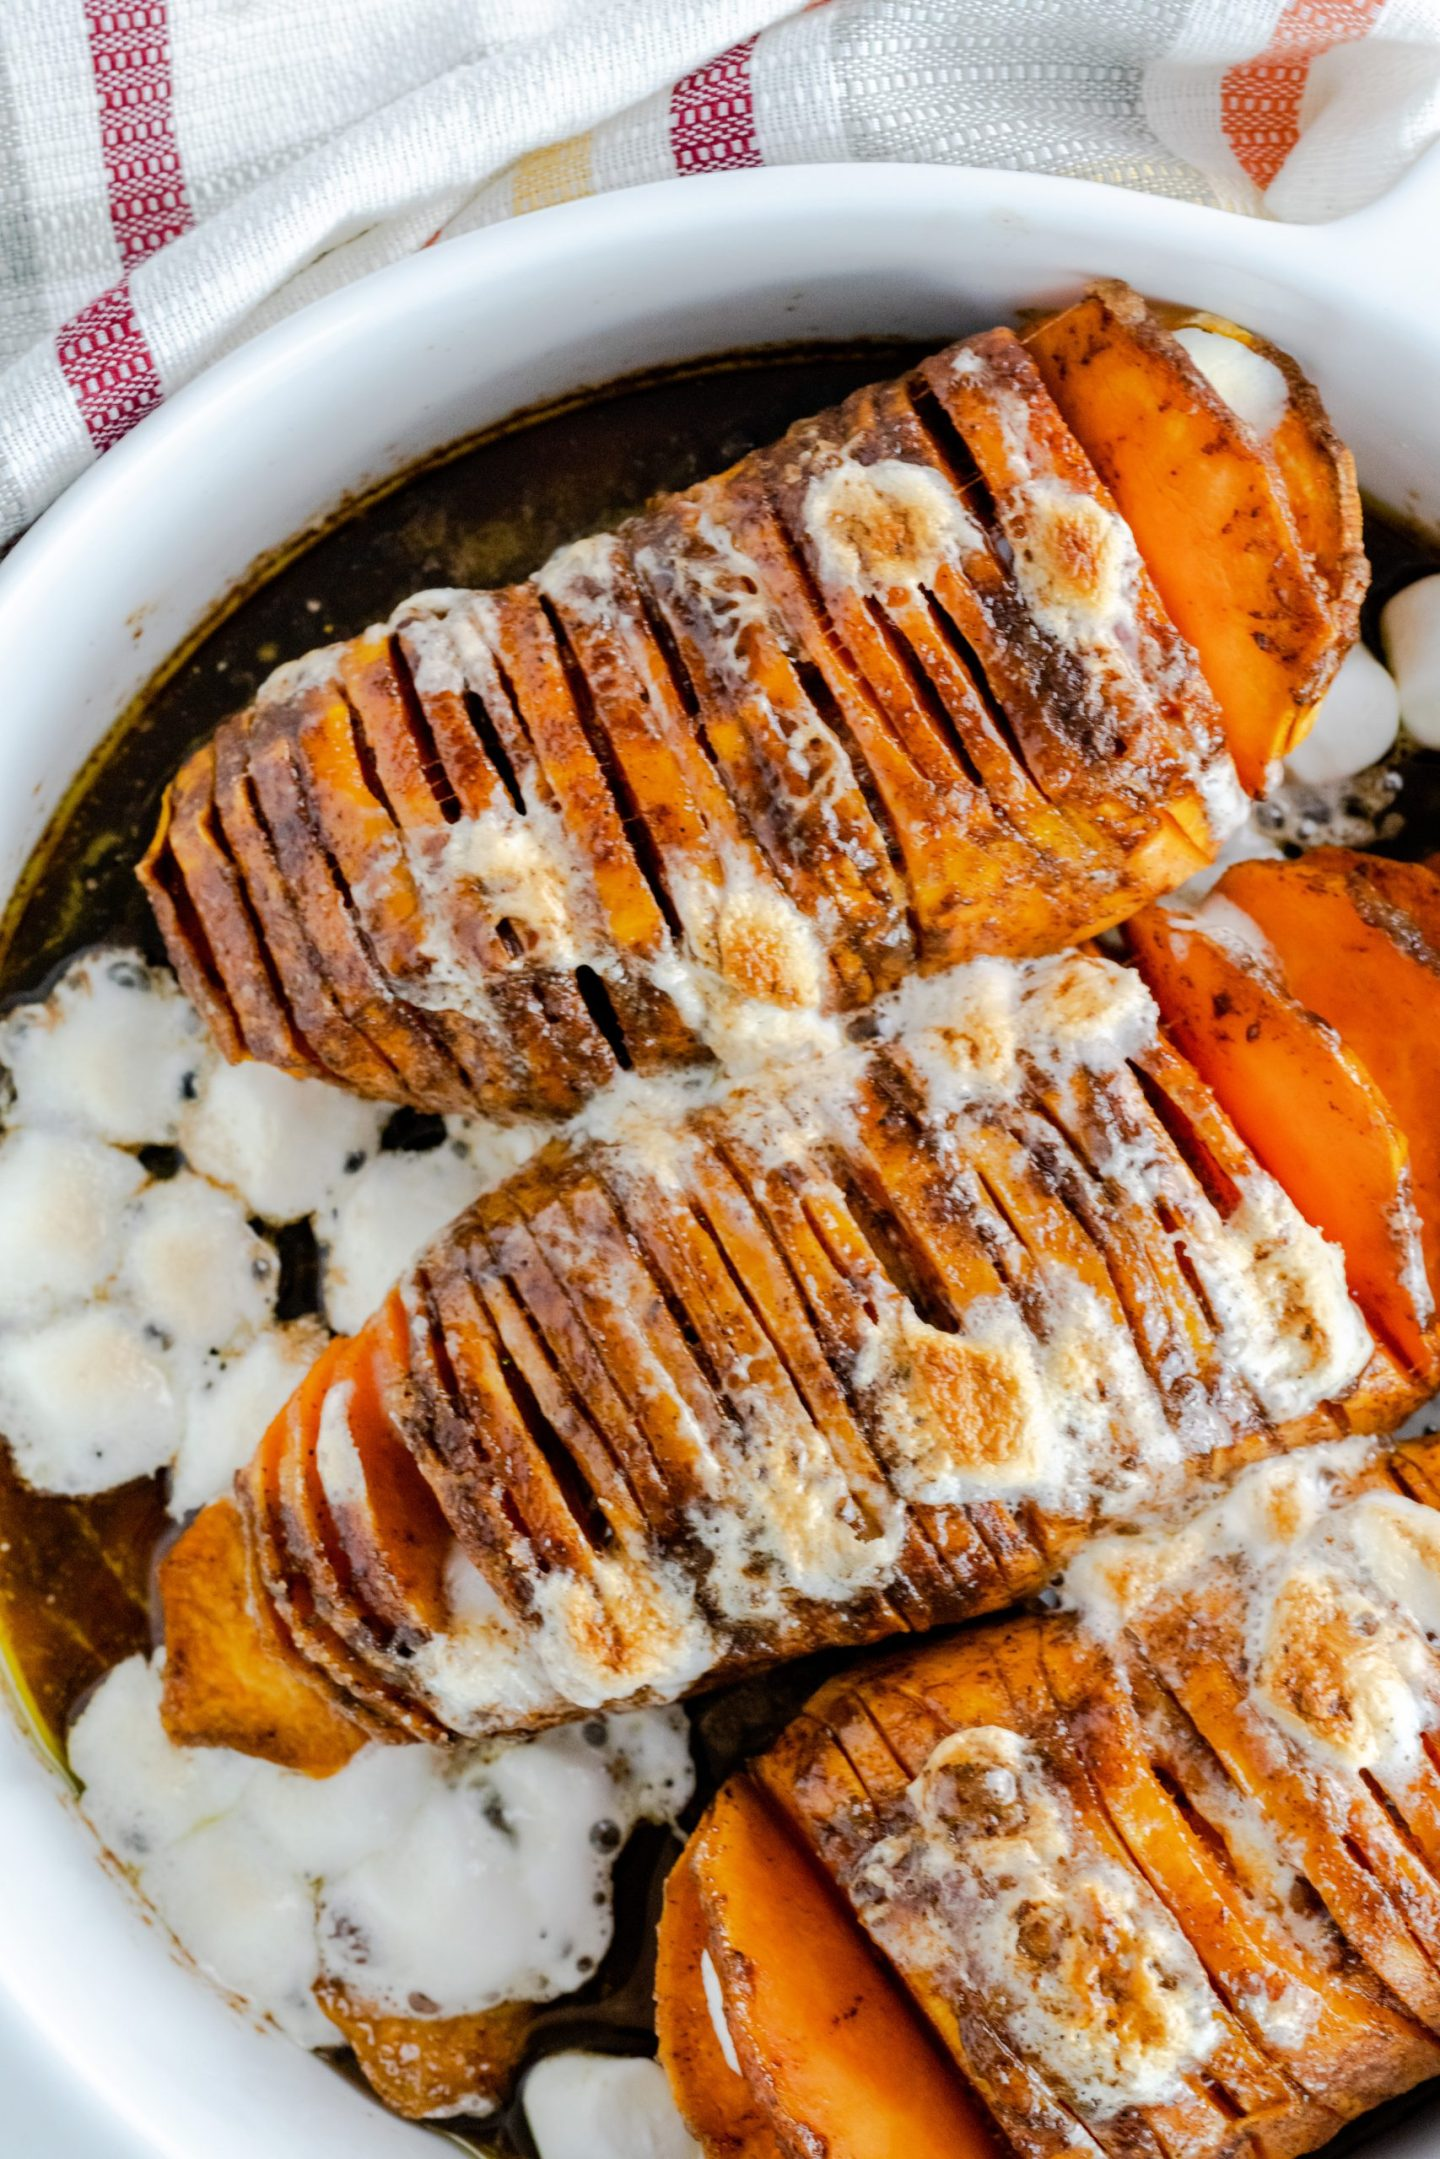 More than 100+ amazing recipes for the Jewish holiday of Passover, including a bunch of go-to, favorite Pesach recipes to make for Seder dinner, including appetizers, side dishes, and desserts, with plenty that work as great leftovers for the holiday week to follow. | glitterinc.com | @glitterinc // Hasselback Sweet Potato Casserole